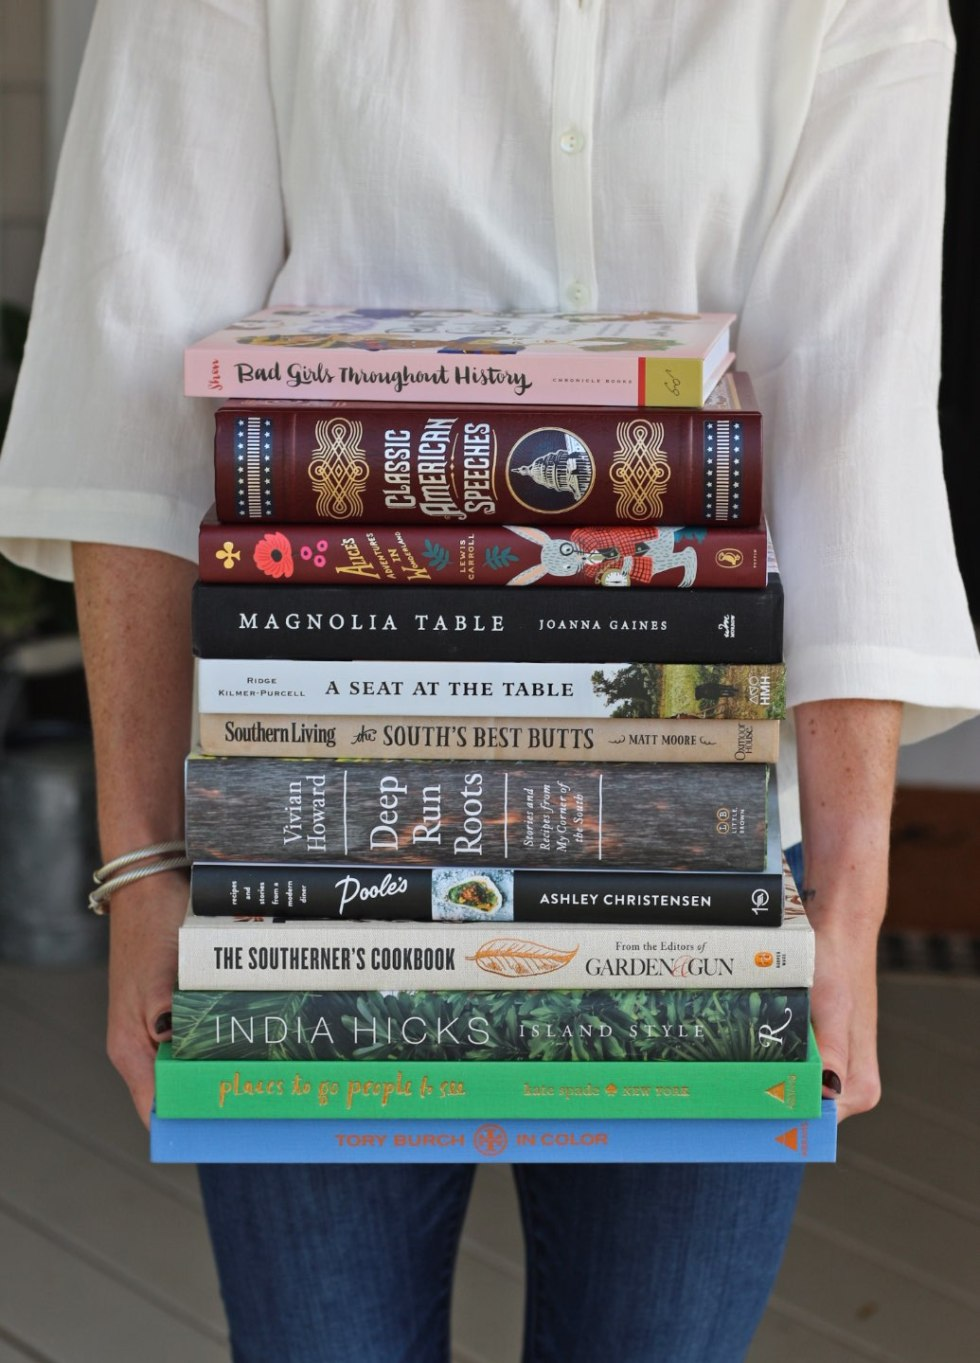 25 Coffee Table Books for Your Home - I'm Fixin' To - @mbg0112